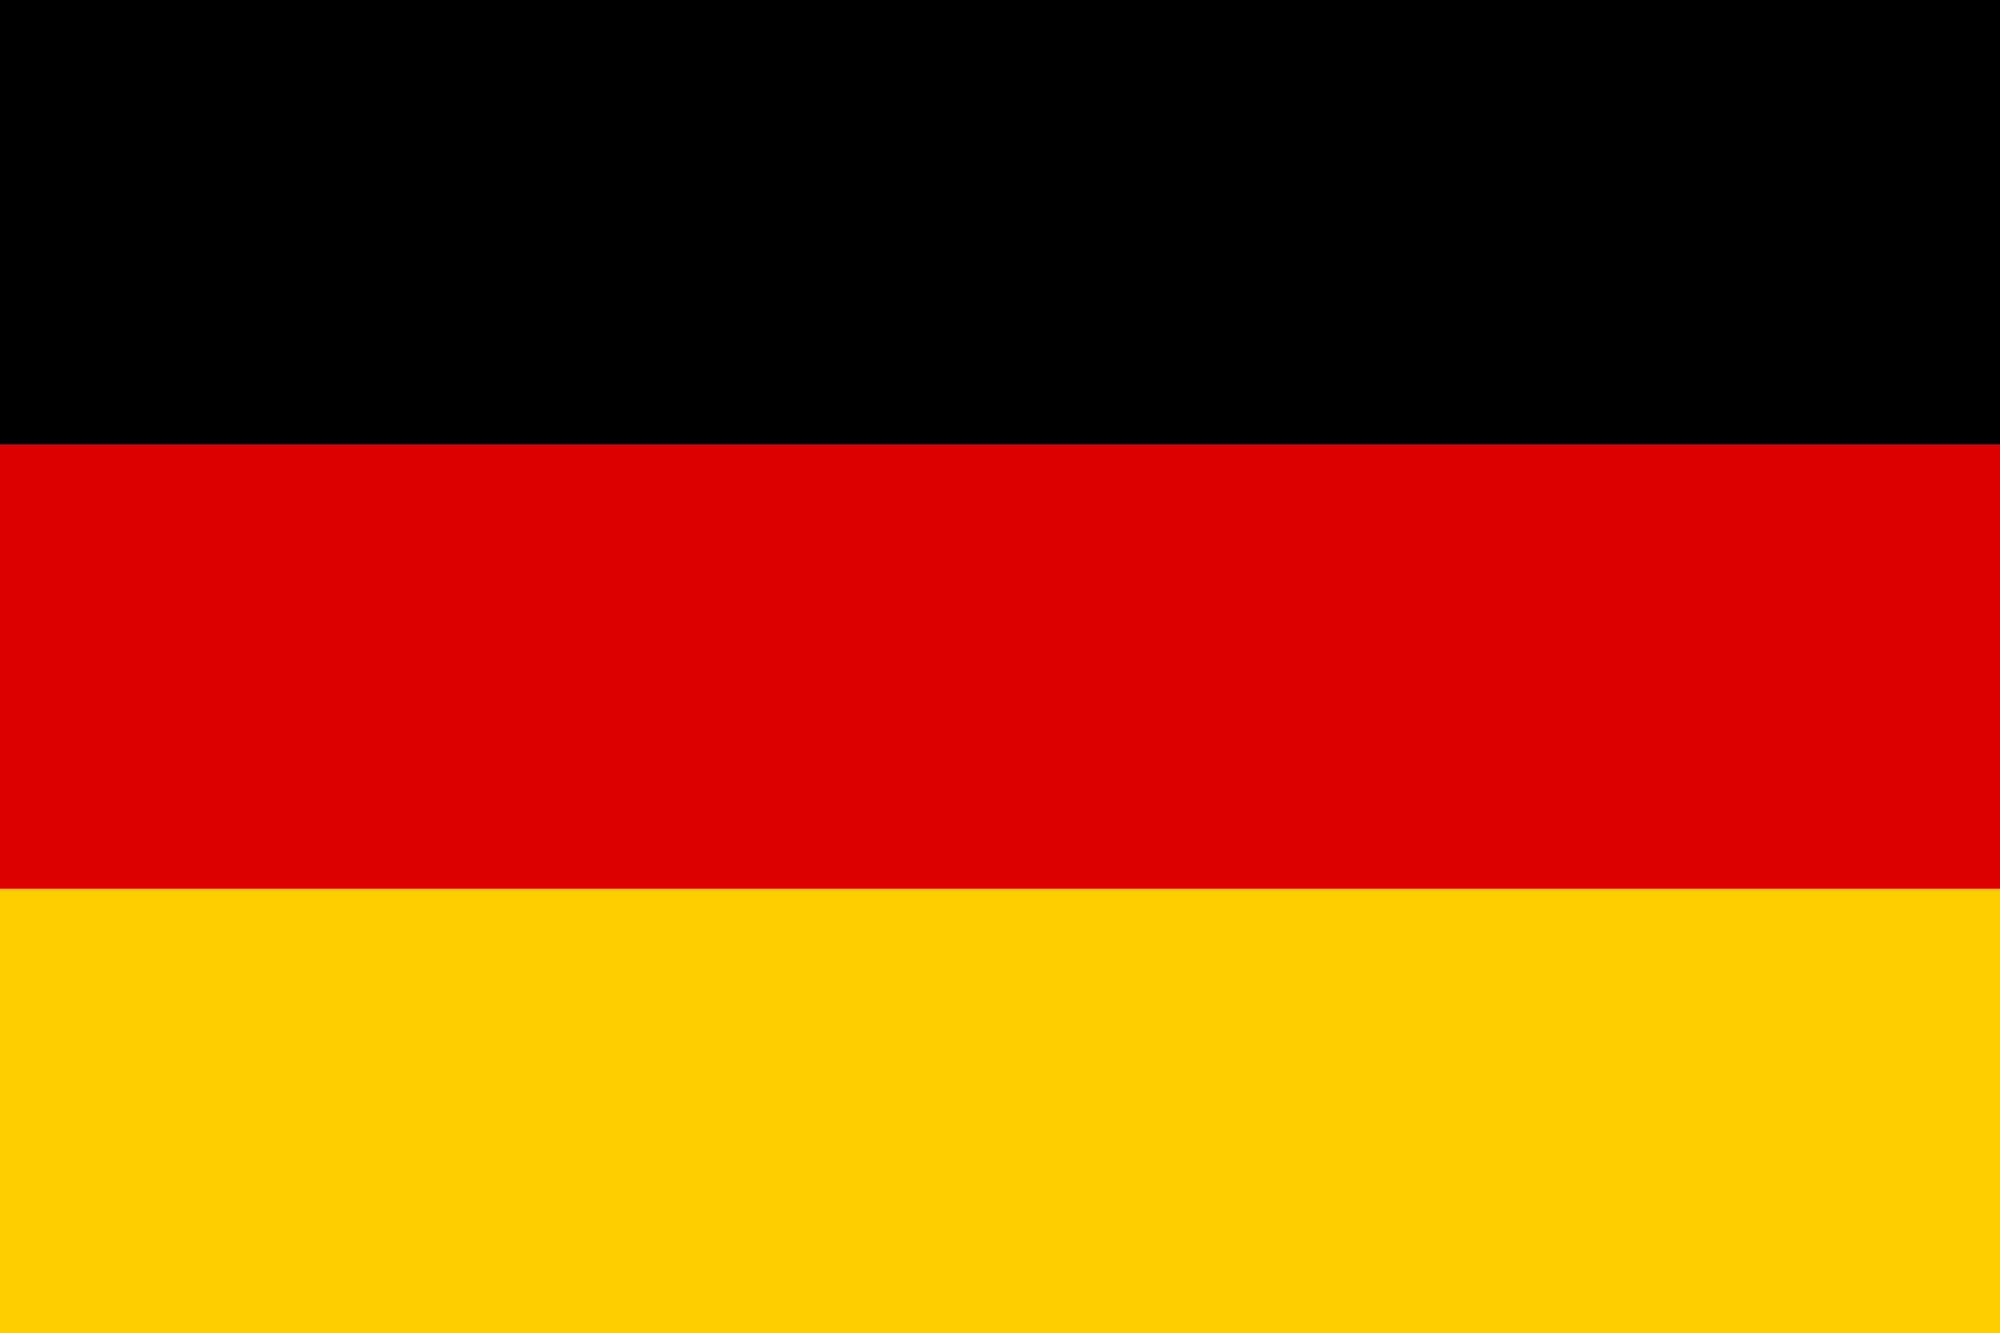 Flag_of_Germany_(3-2_aspect_ratio).svg